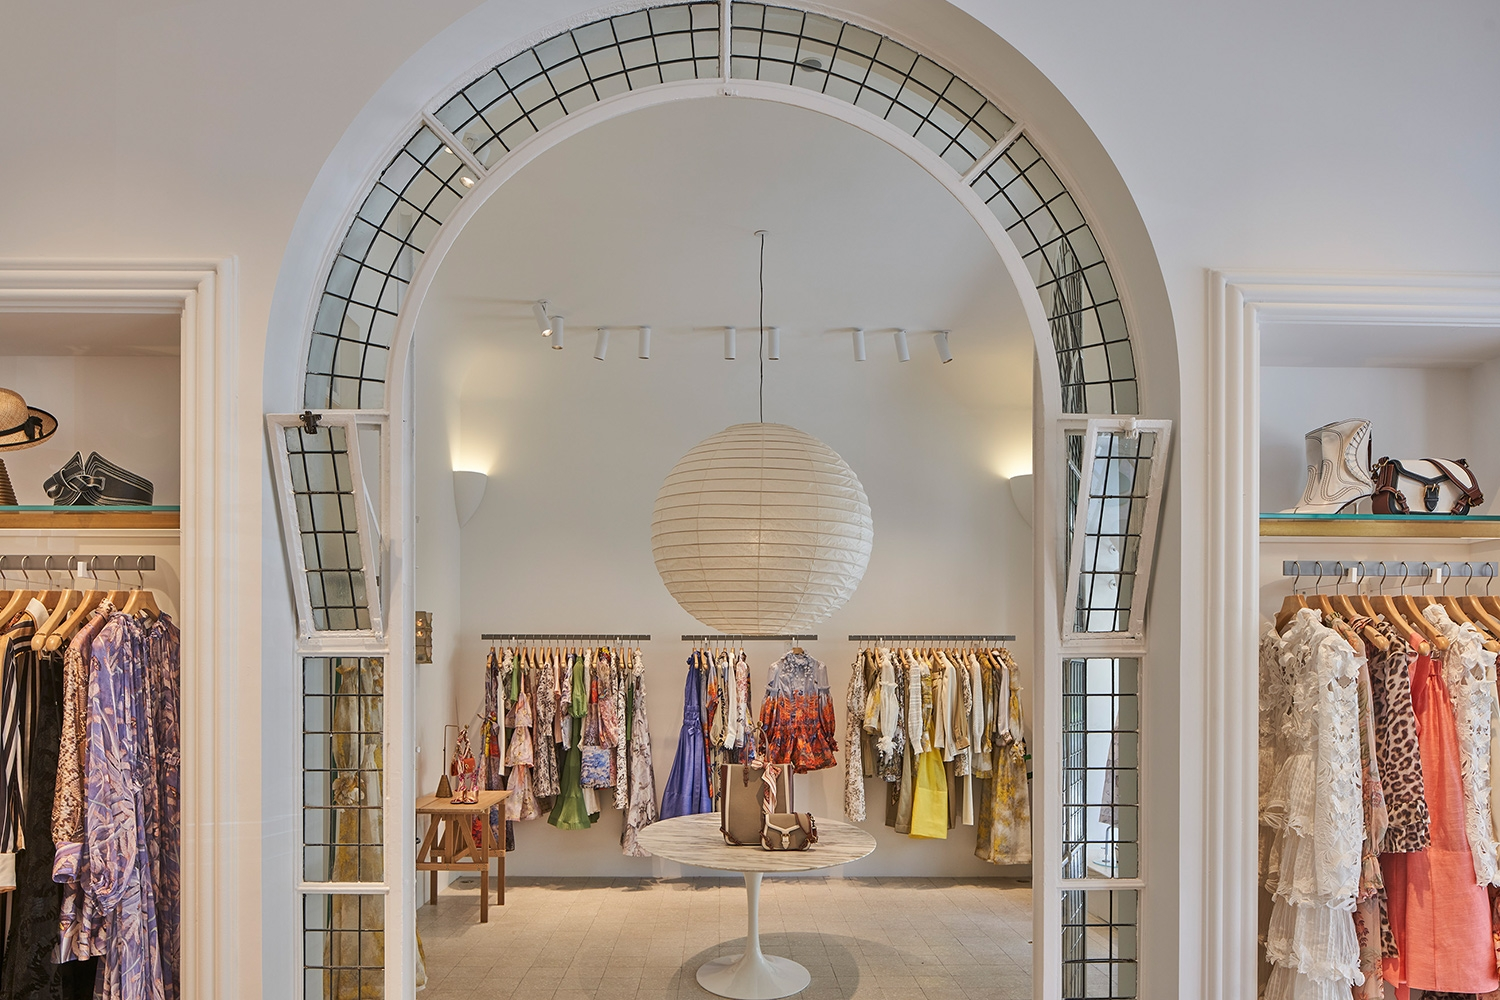 Explore our third French boutique, filled with fun Australian touches, May 2021